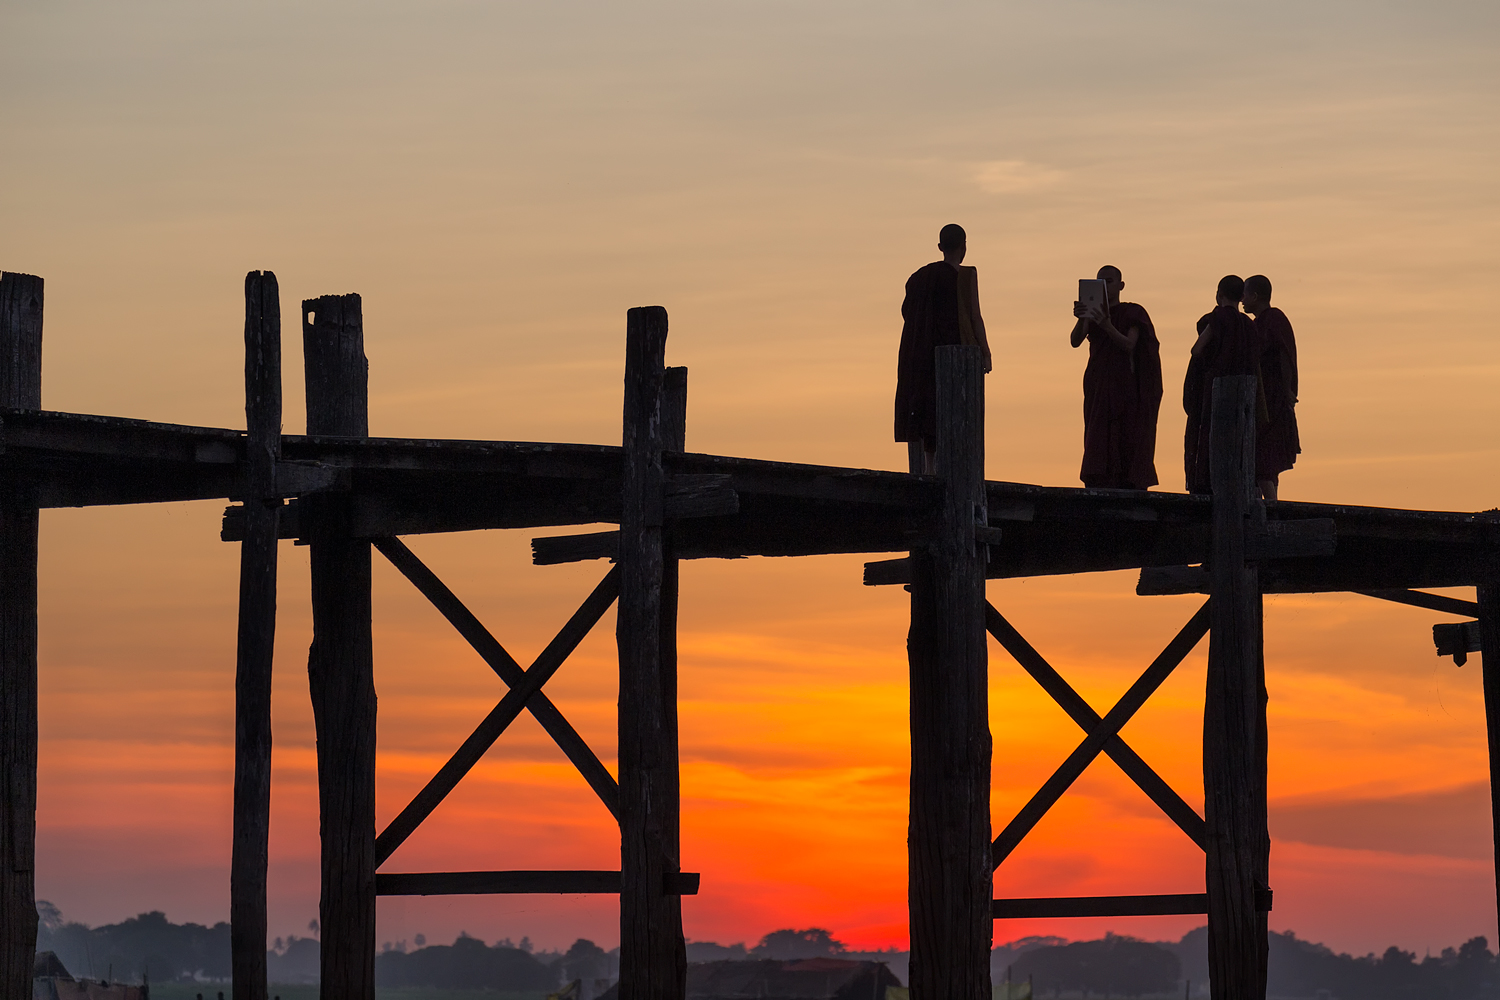 Young monks on U Bein Bridge   170mm   1/320th sec   f6.3   ISO200